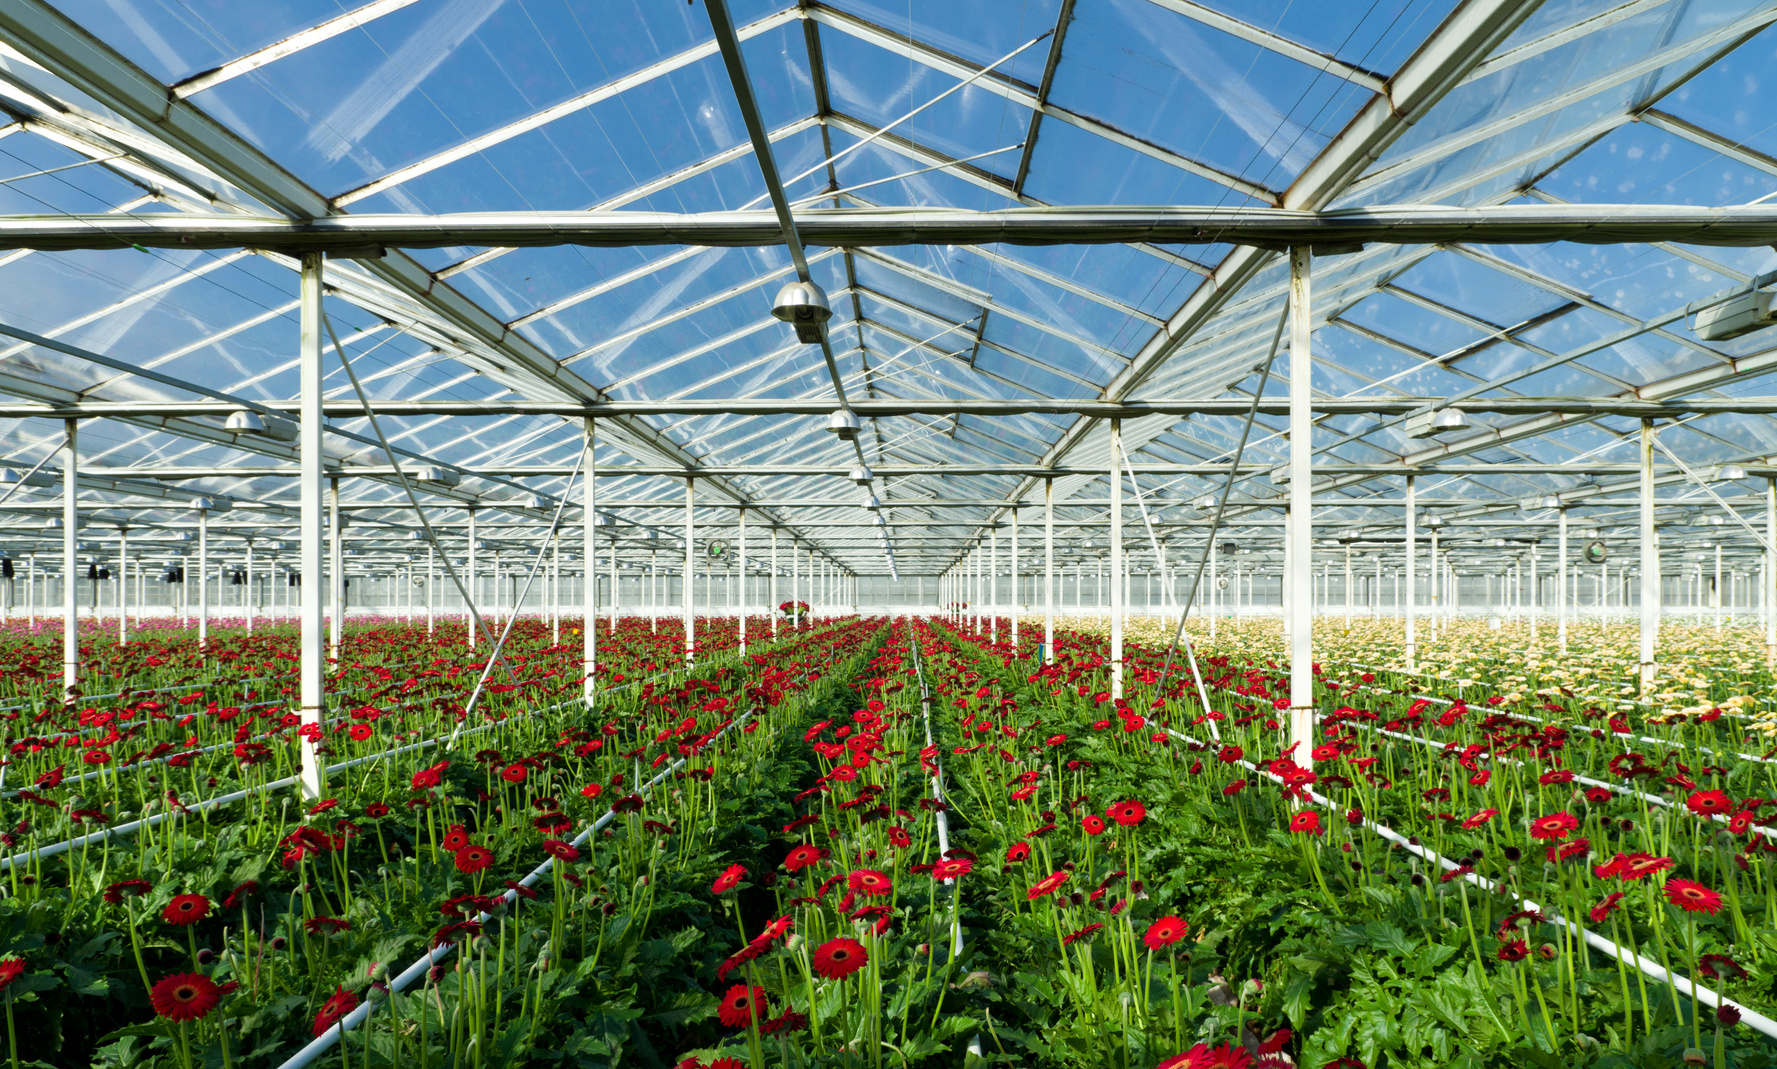 horticulture in greenhouse